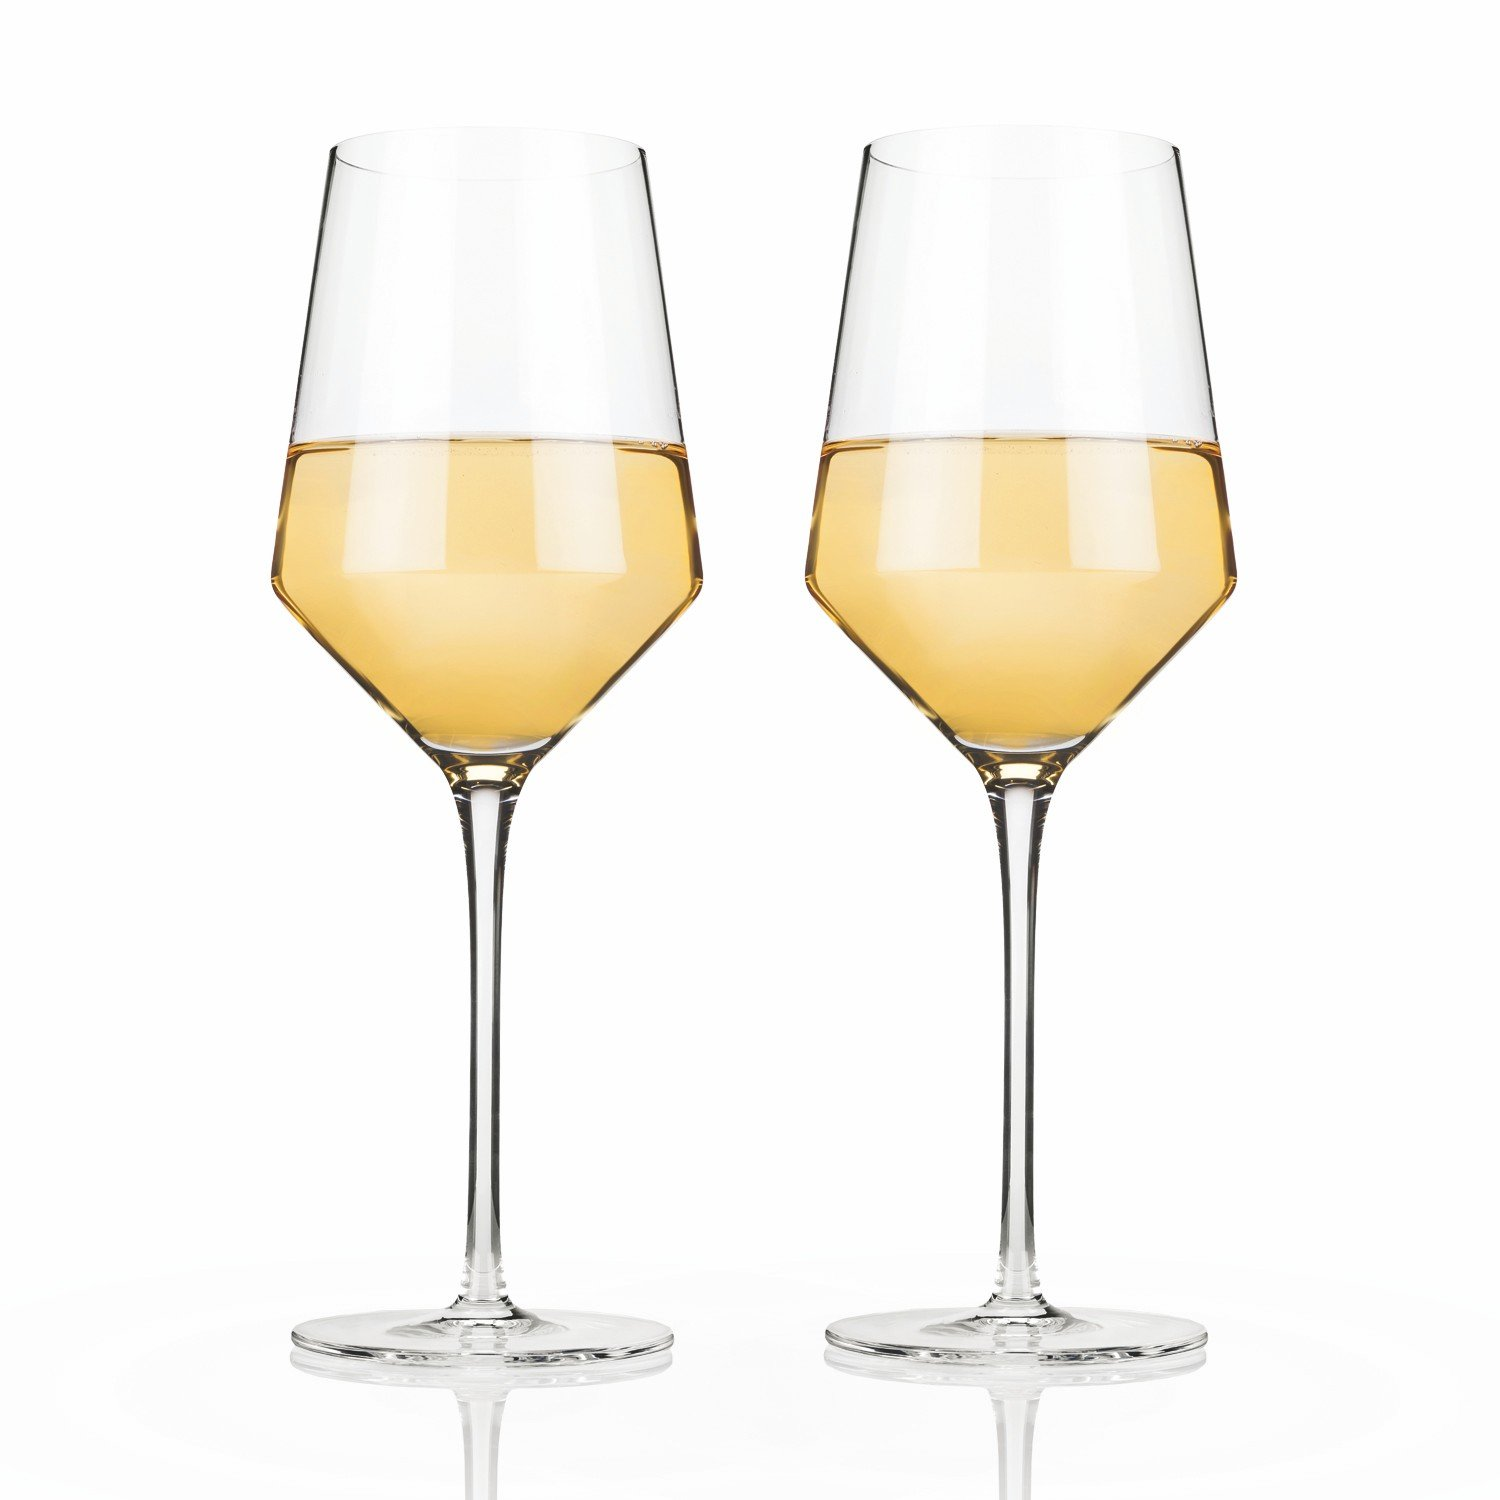 Chardonnay Wine Glass Clear Wine Glasses Raye Crystal Chardonnay Insulated Wine Glass Set Of 2